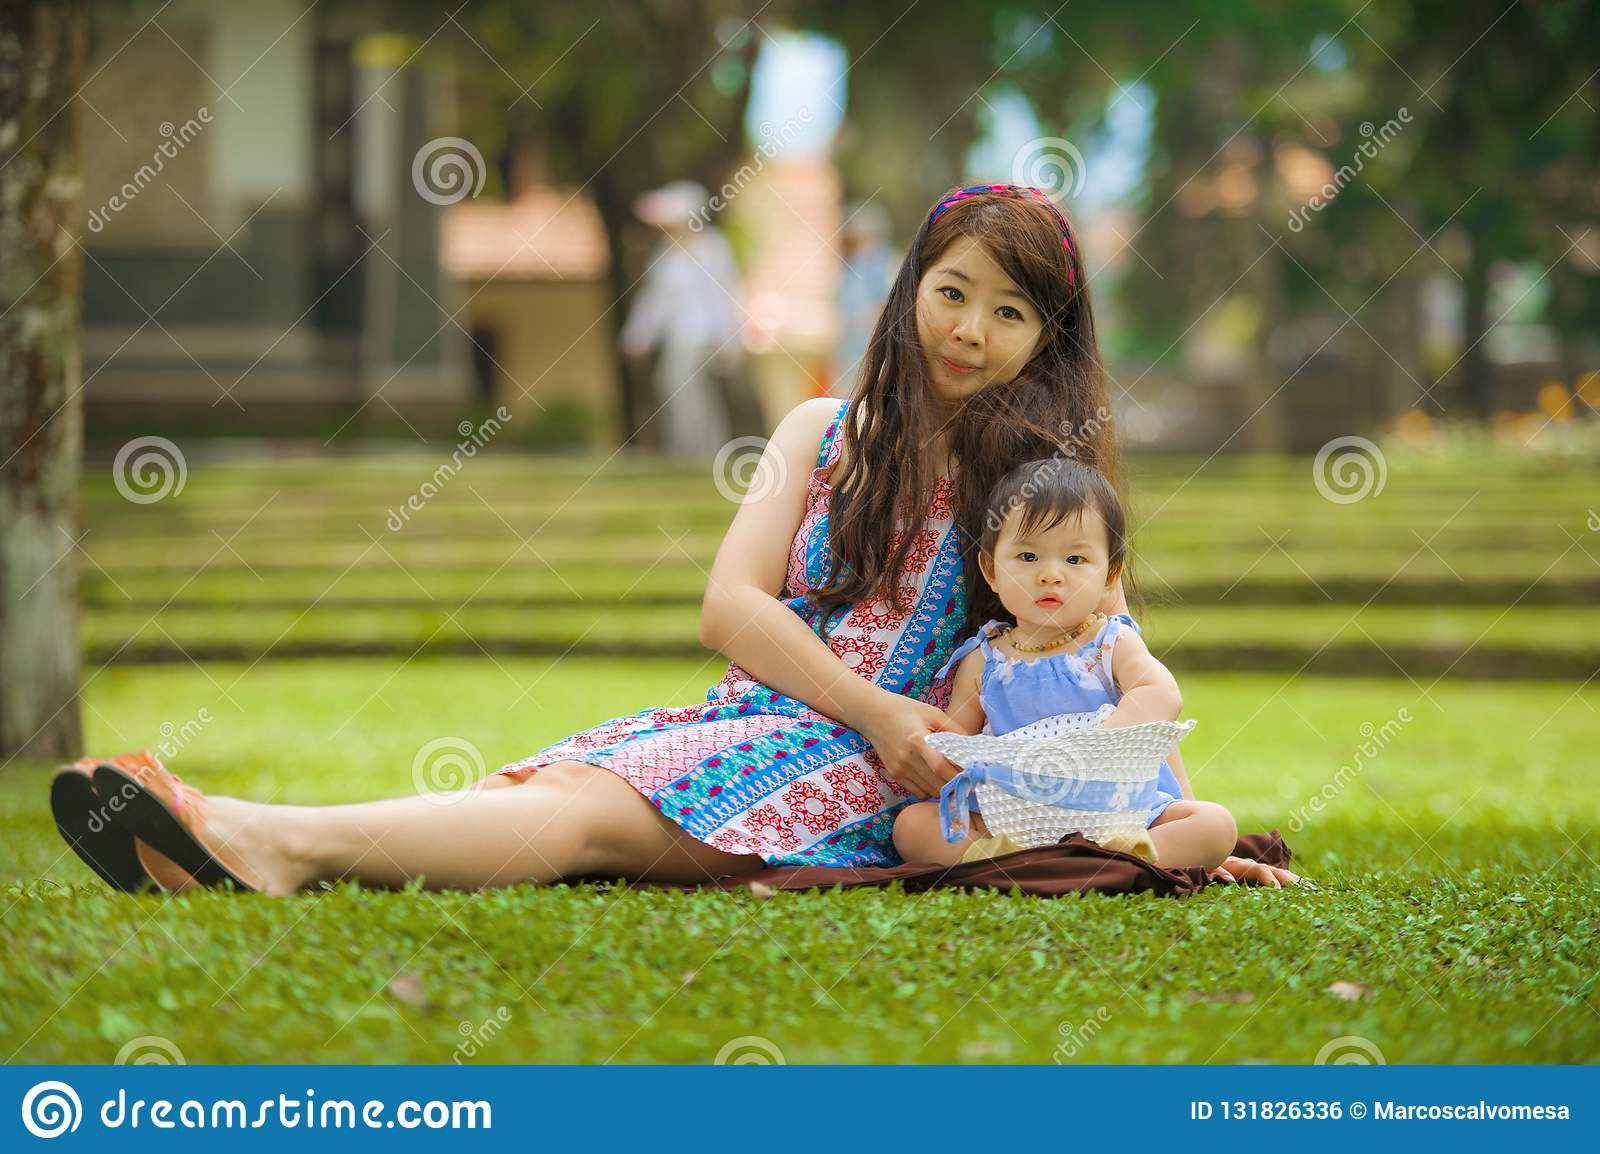 Happy and playful Asian Chinese woman as loving mother enjoying with sweet and beautiful daughter baby girl sitting together